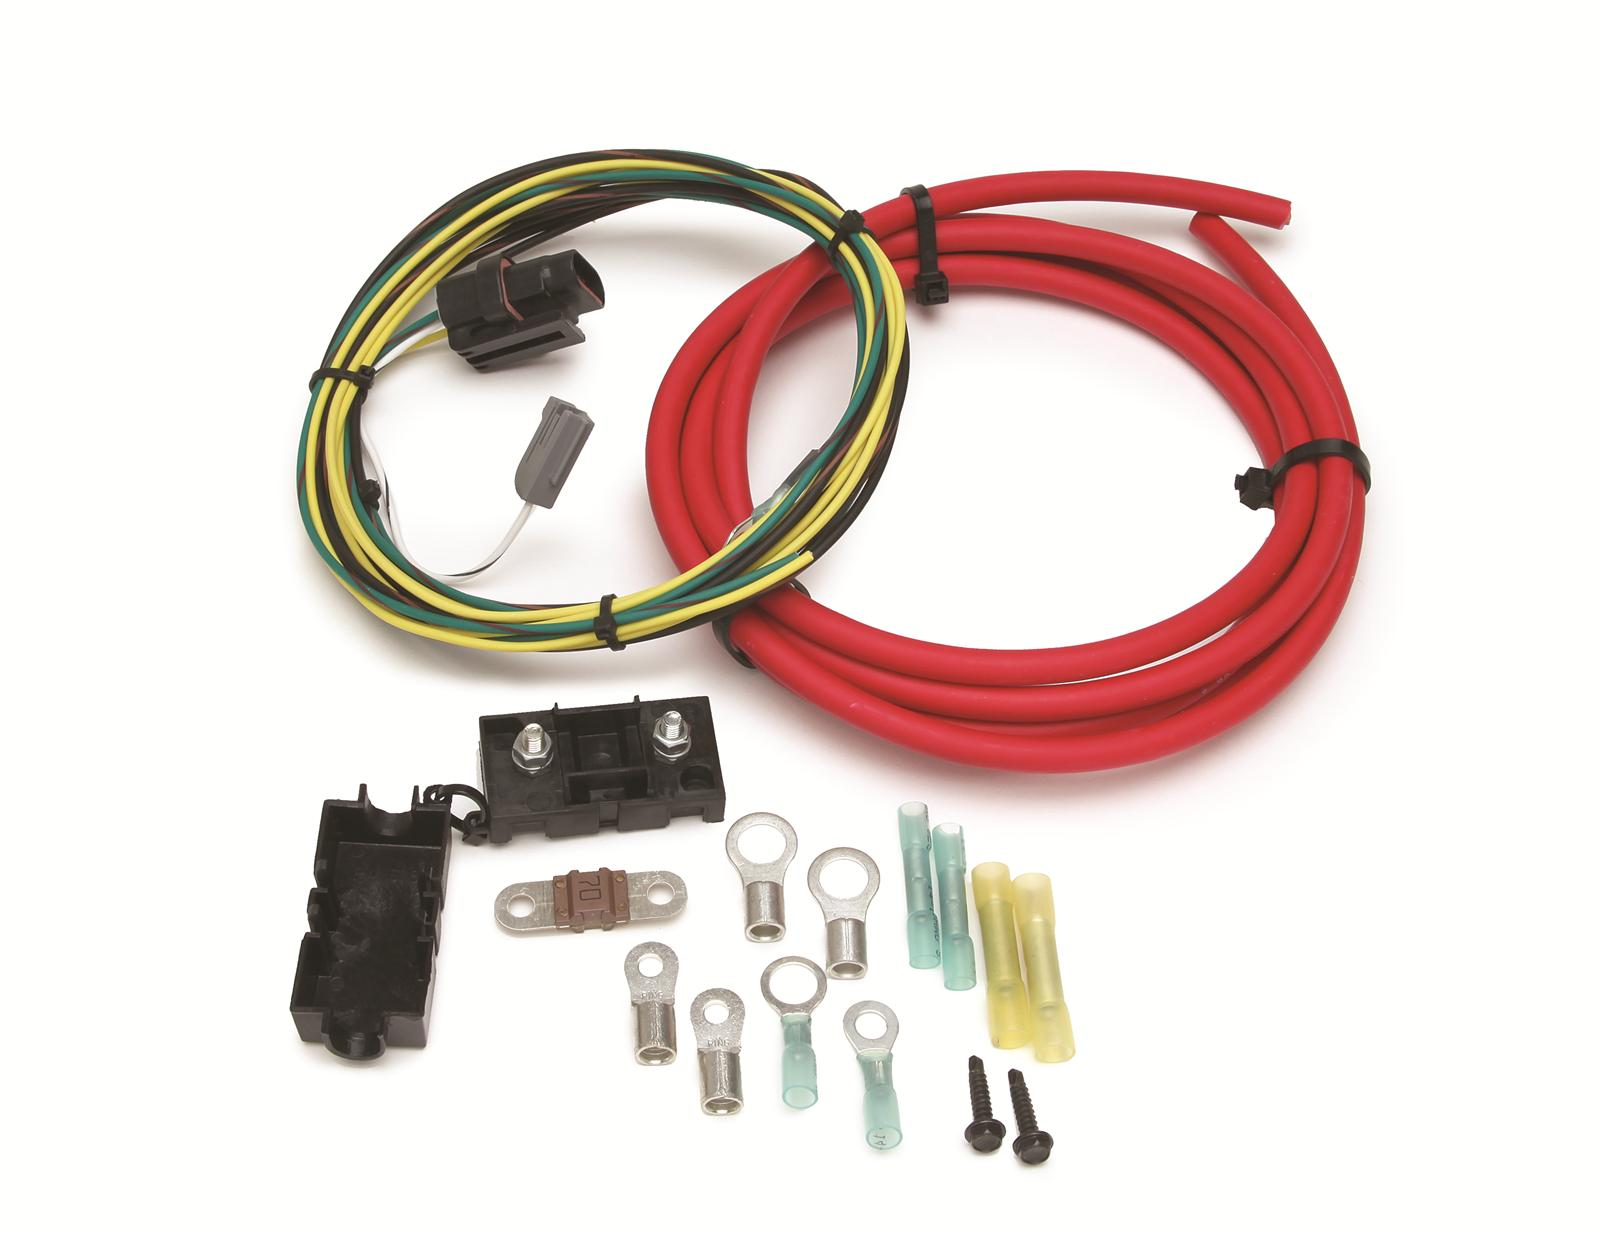 hight resolution of painless performance alternator wiring kits 30831 free shipping on orders over 99 at summit racing